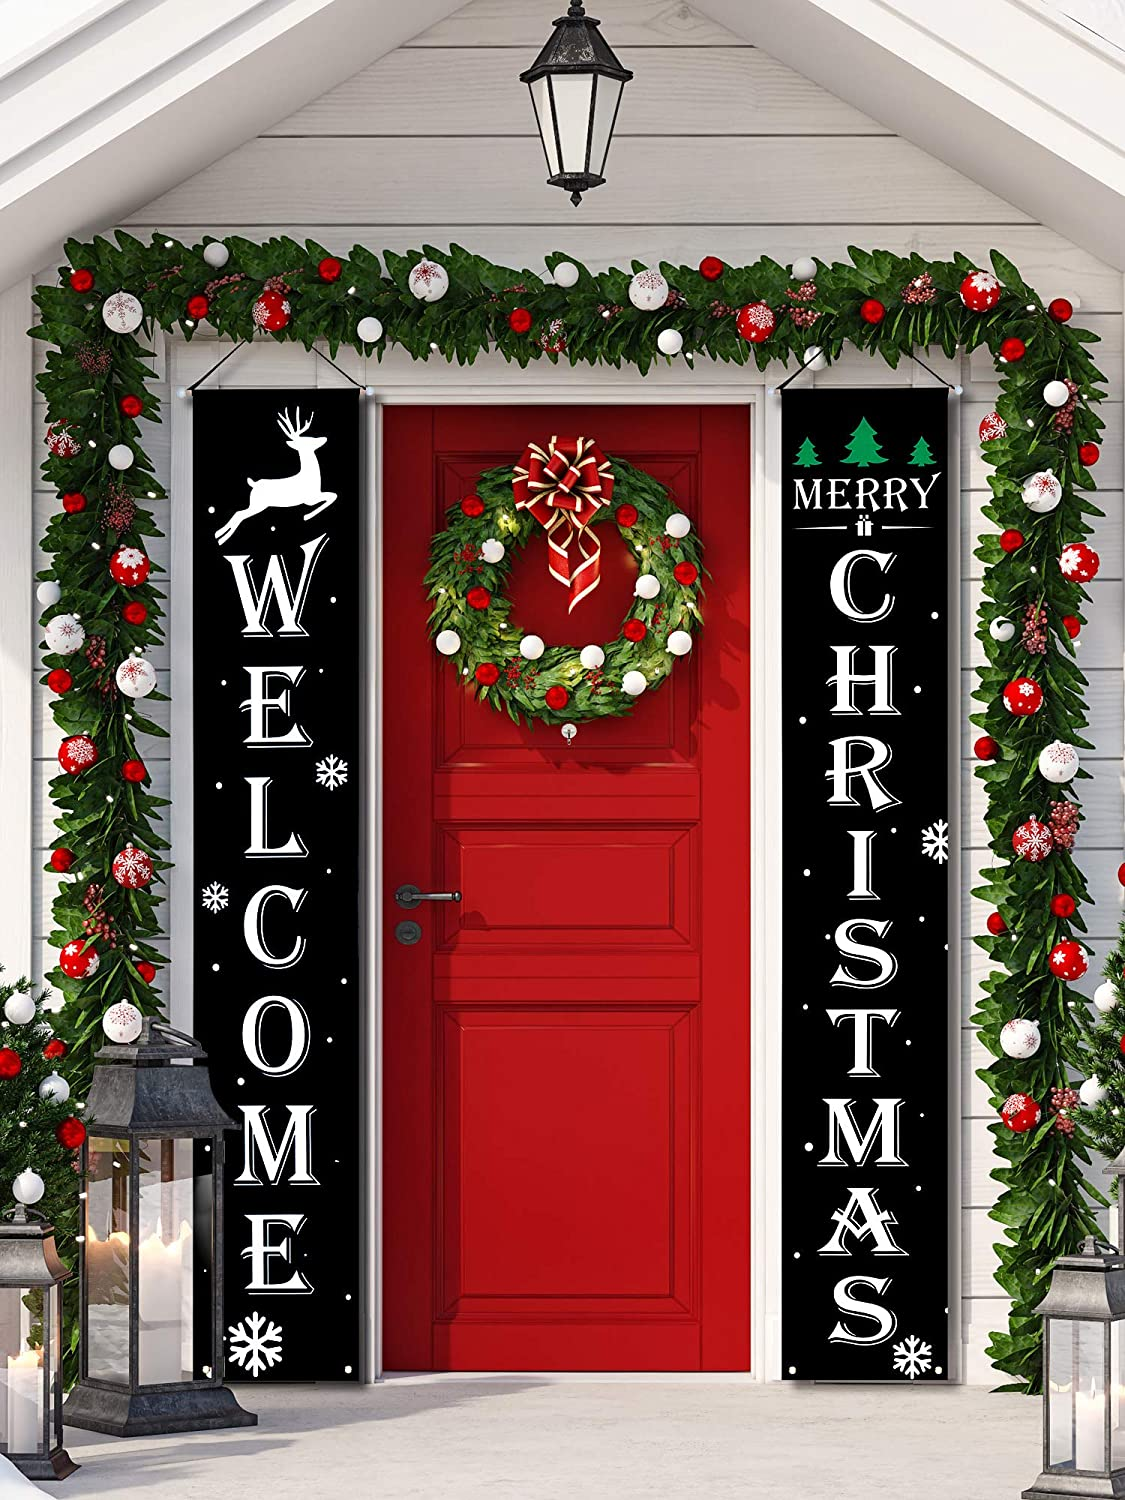 2 Pieces Welcome Christmas Banners Christmas Hanging Porch Sign Black Color Merry Christmas Outdoor Sign for Home Wall Indoor Outdoor Party